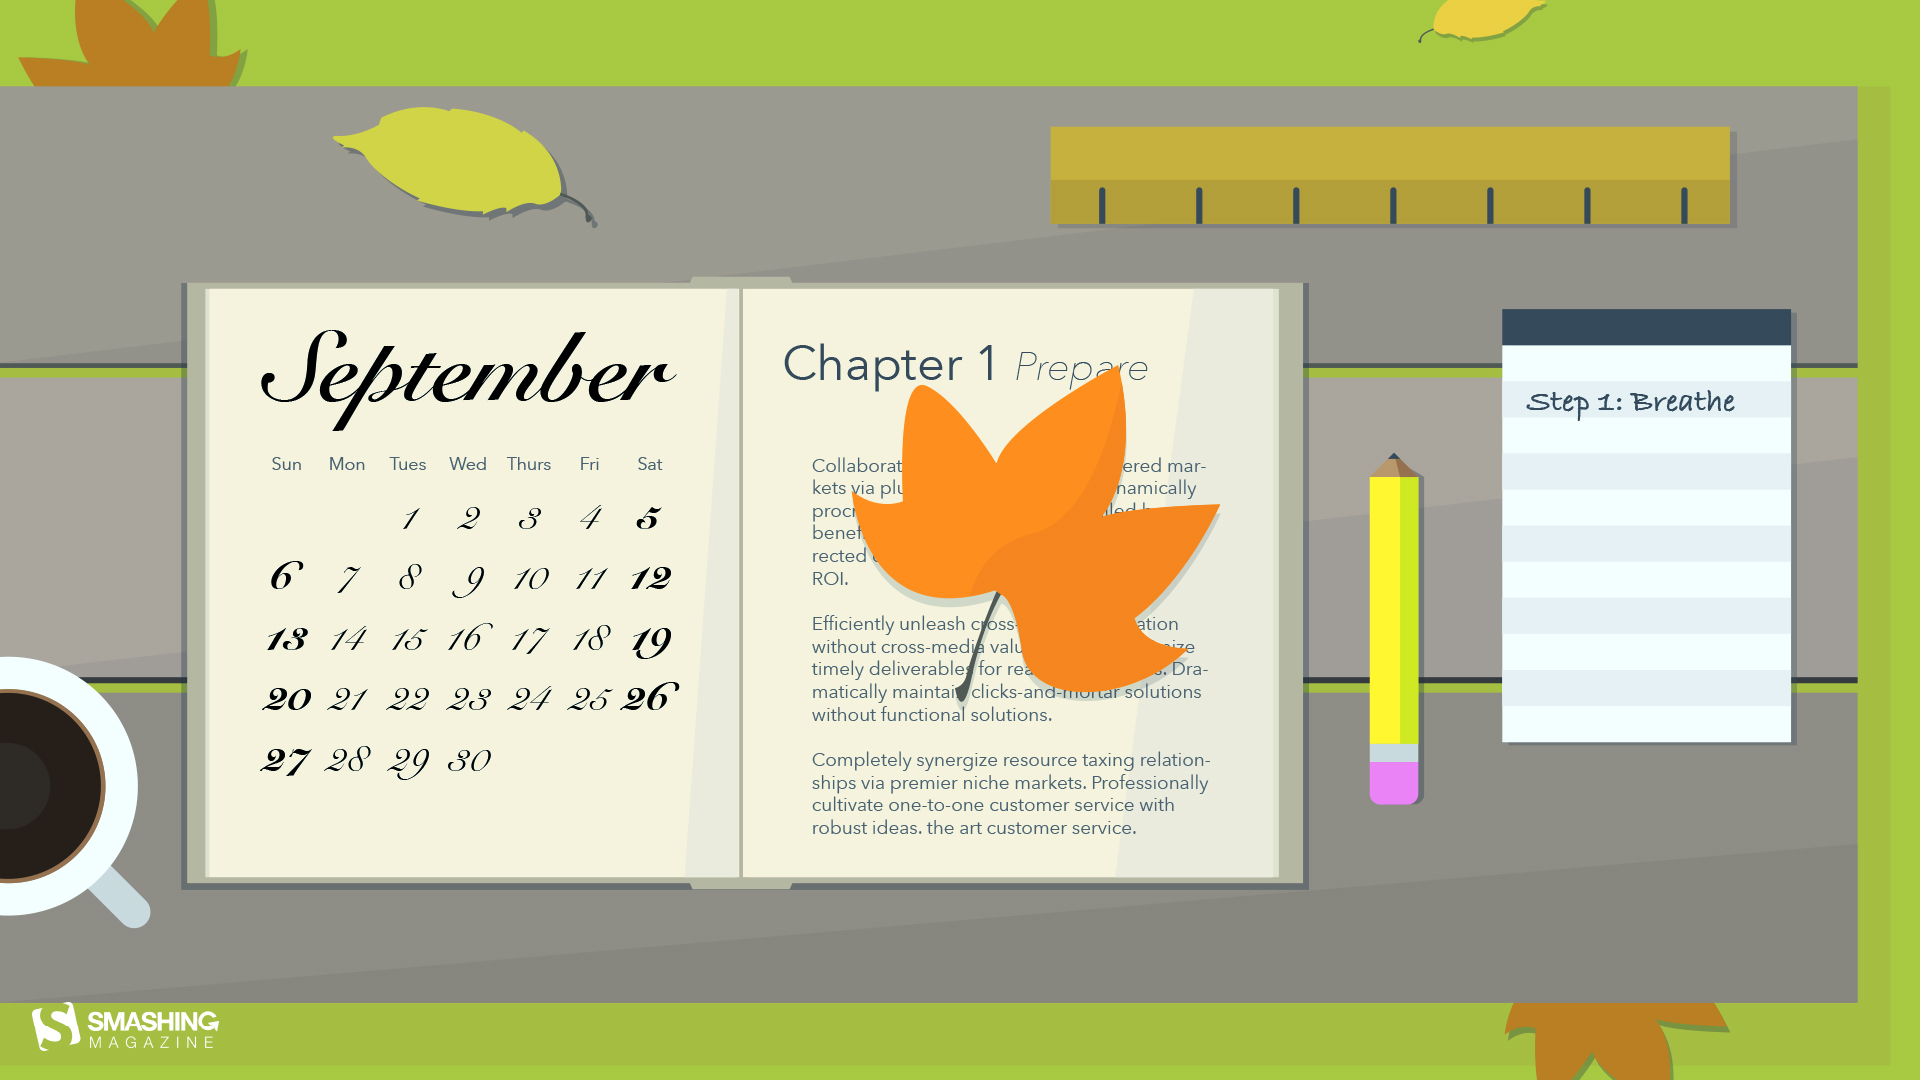 calendar-september-wallpaper-calendar-2015.jpg